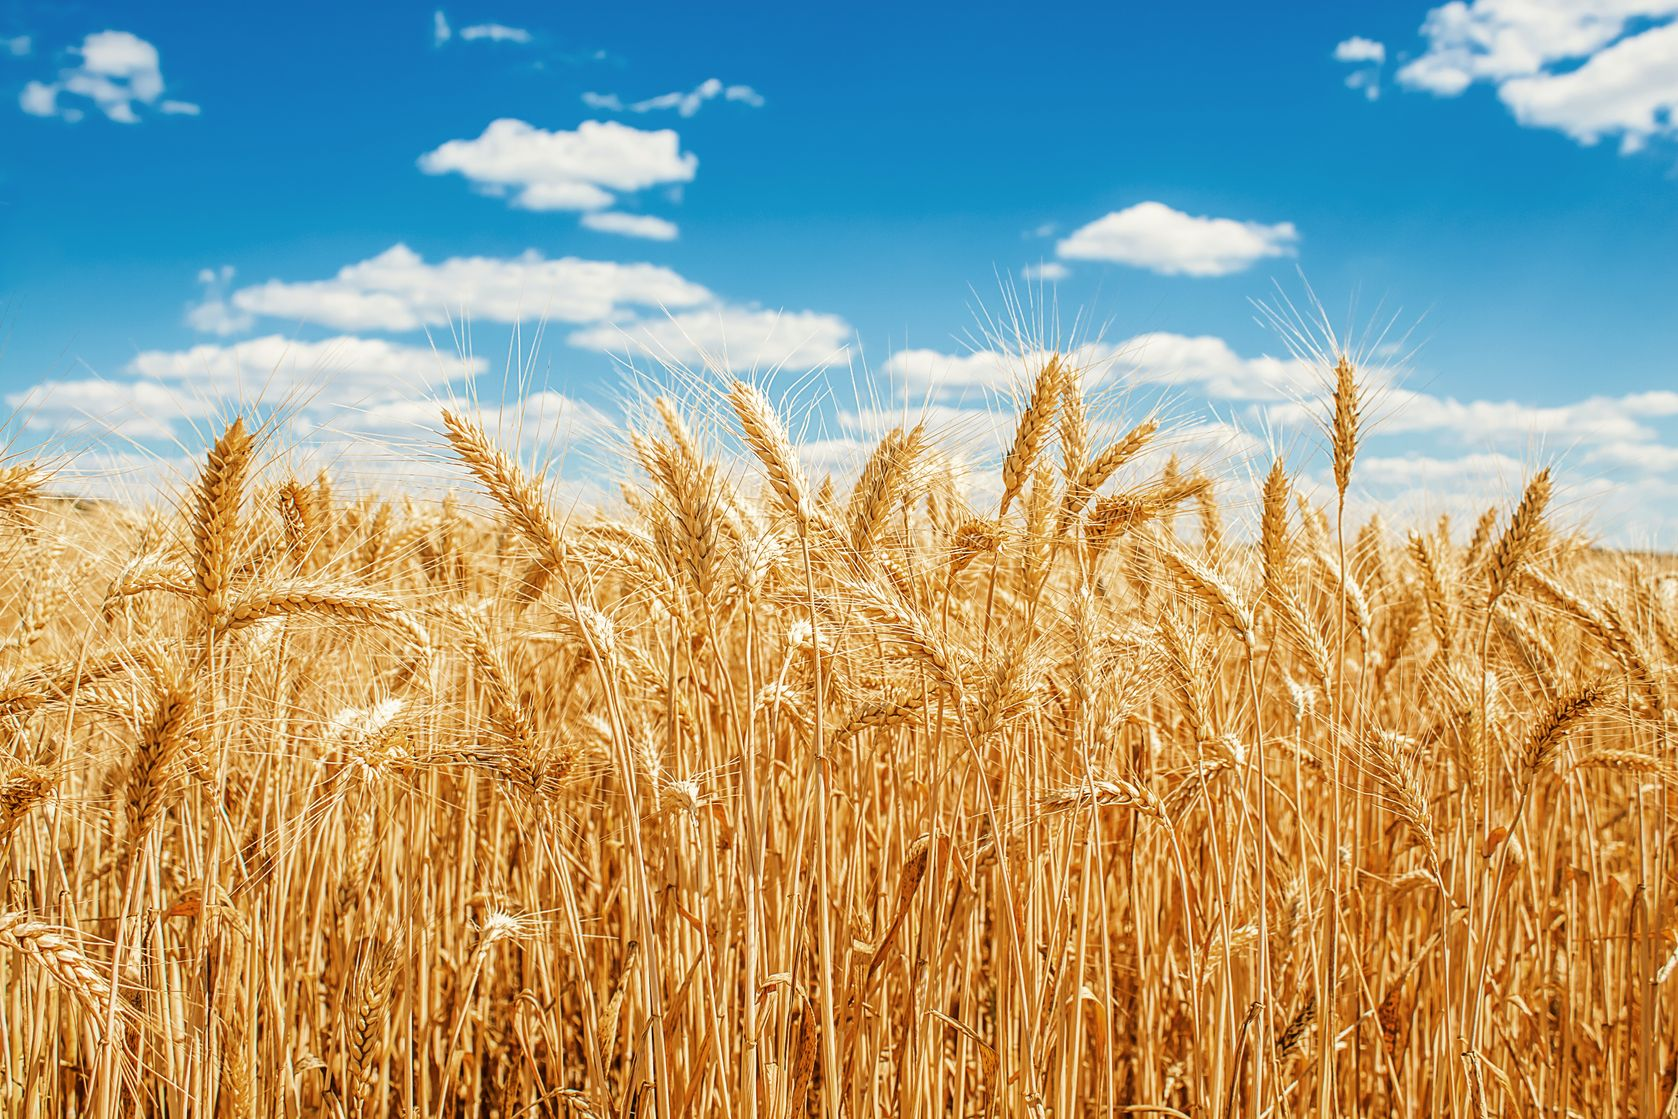 Wheat field on blue sky